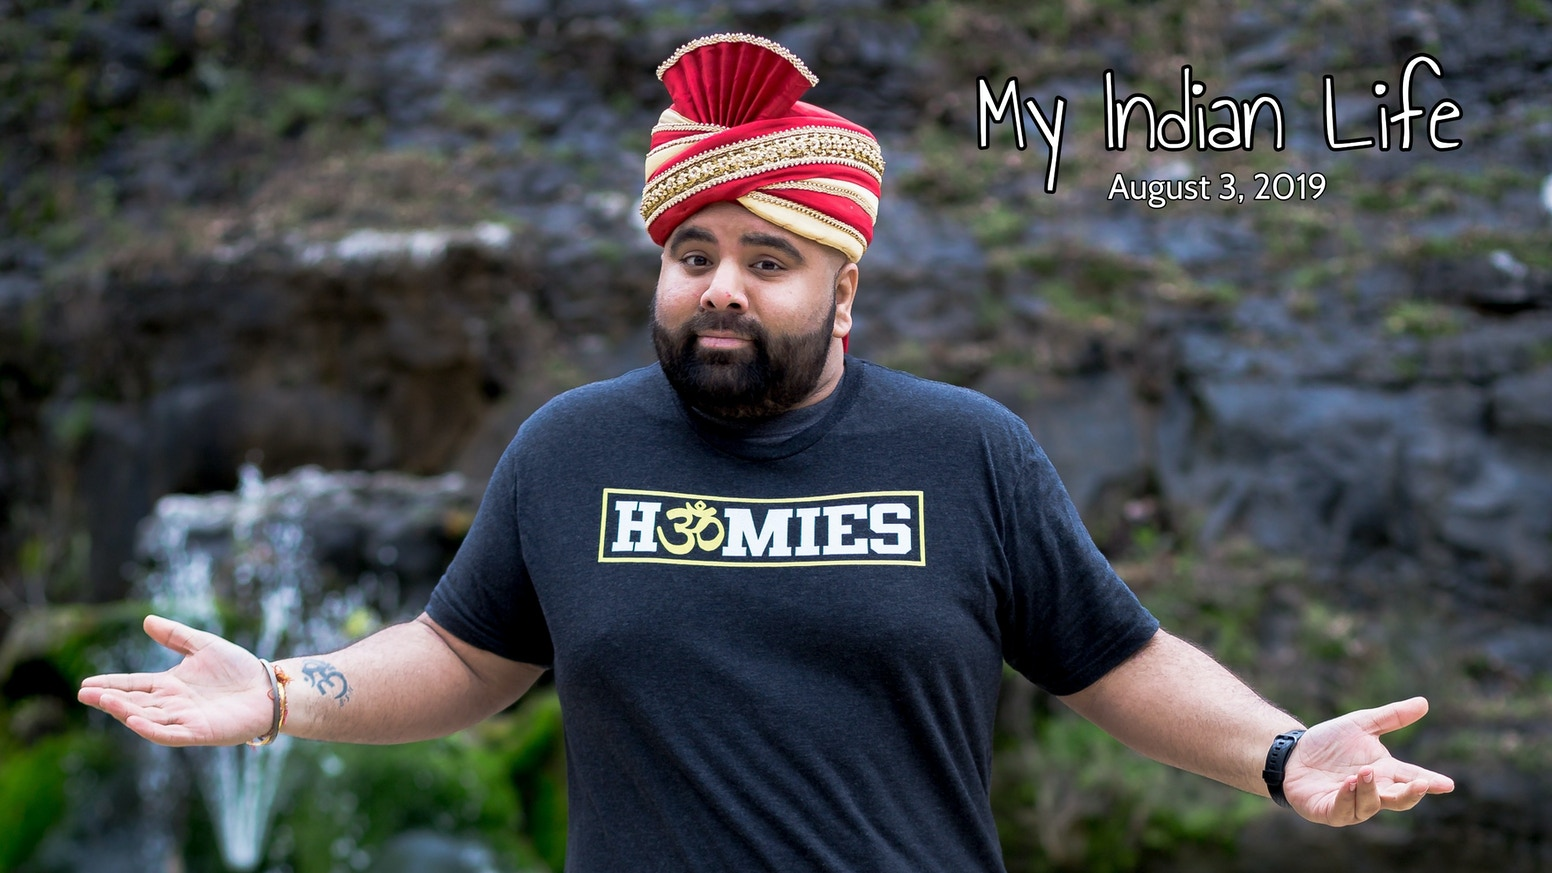 A comedy special on the upbringing of a first generation Indian American born in the southern United States.